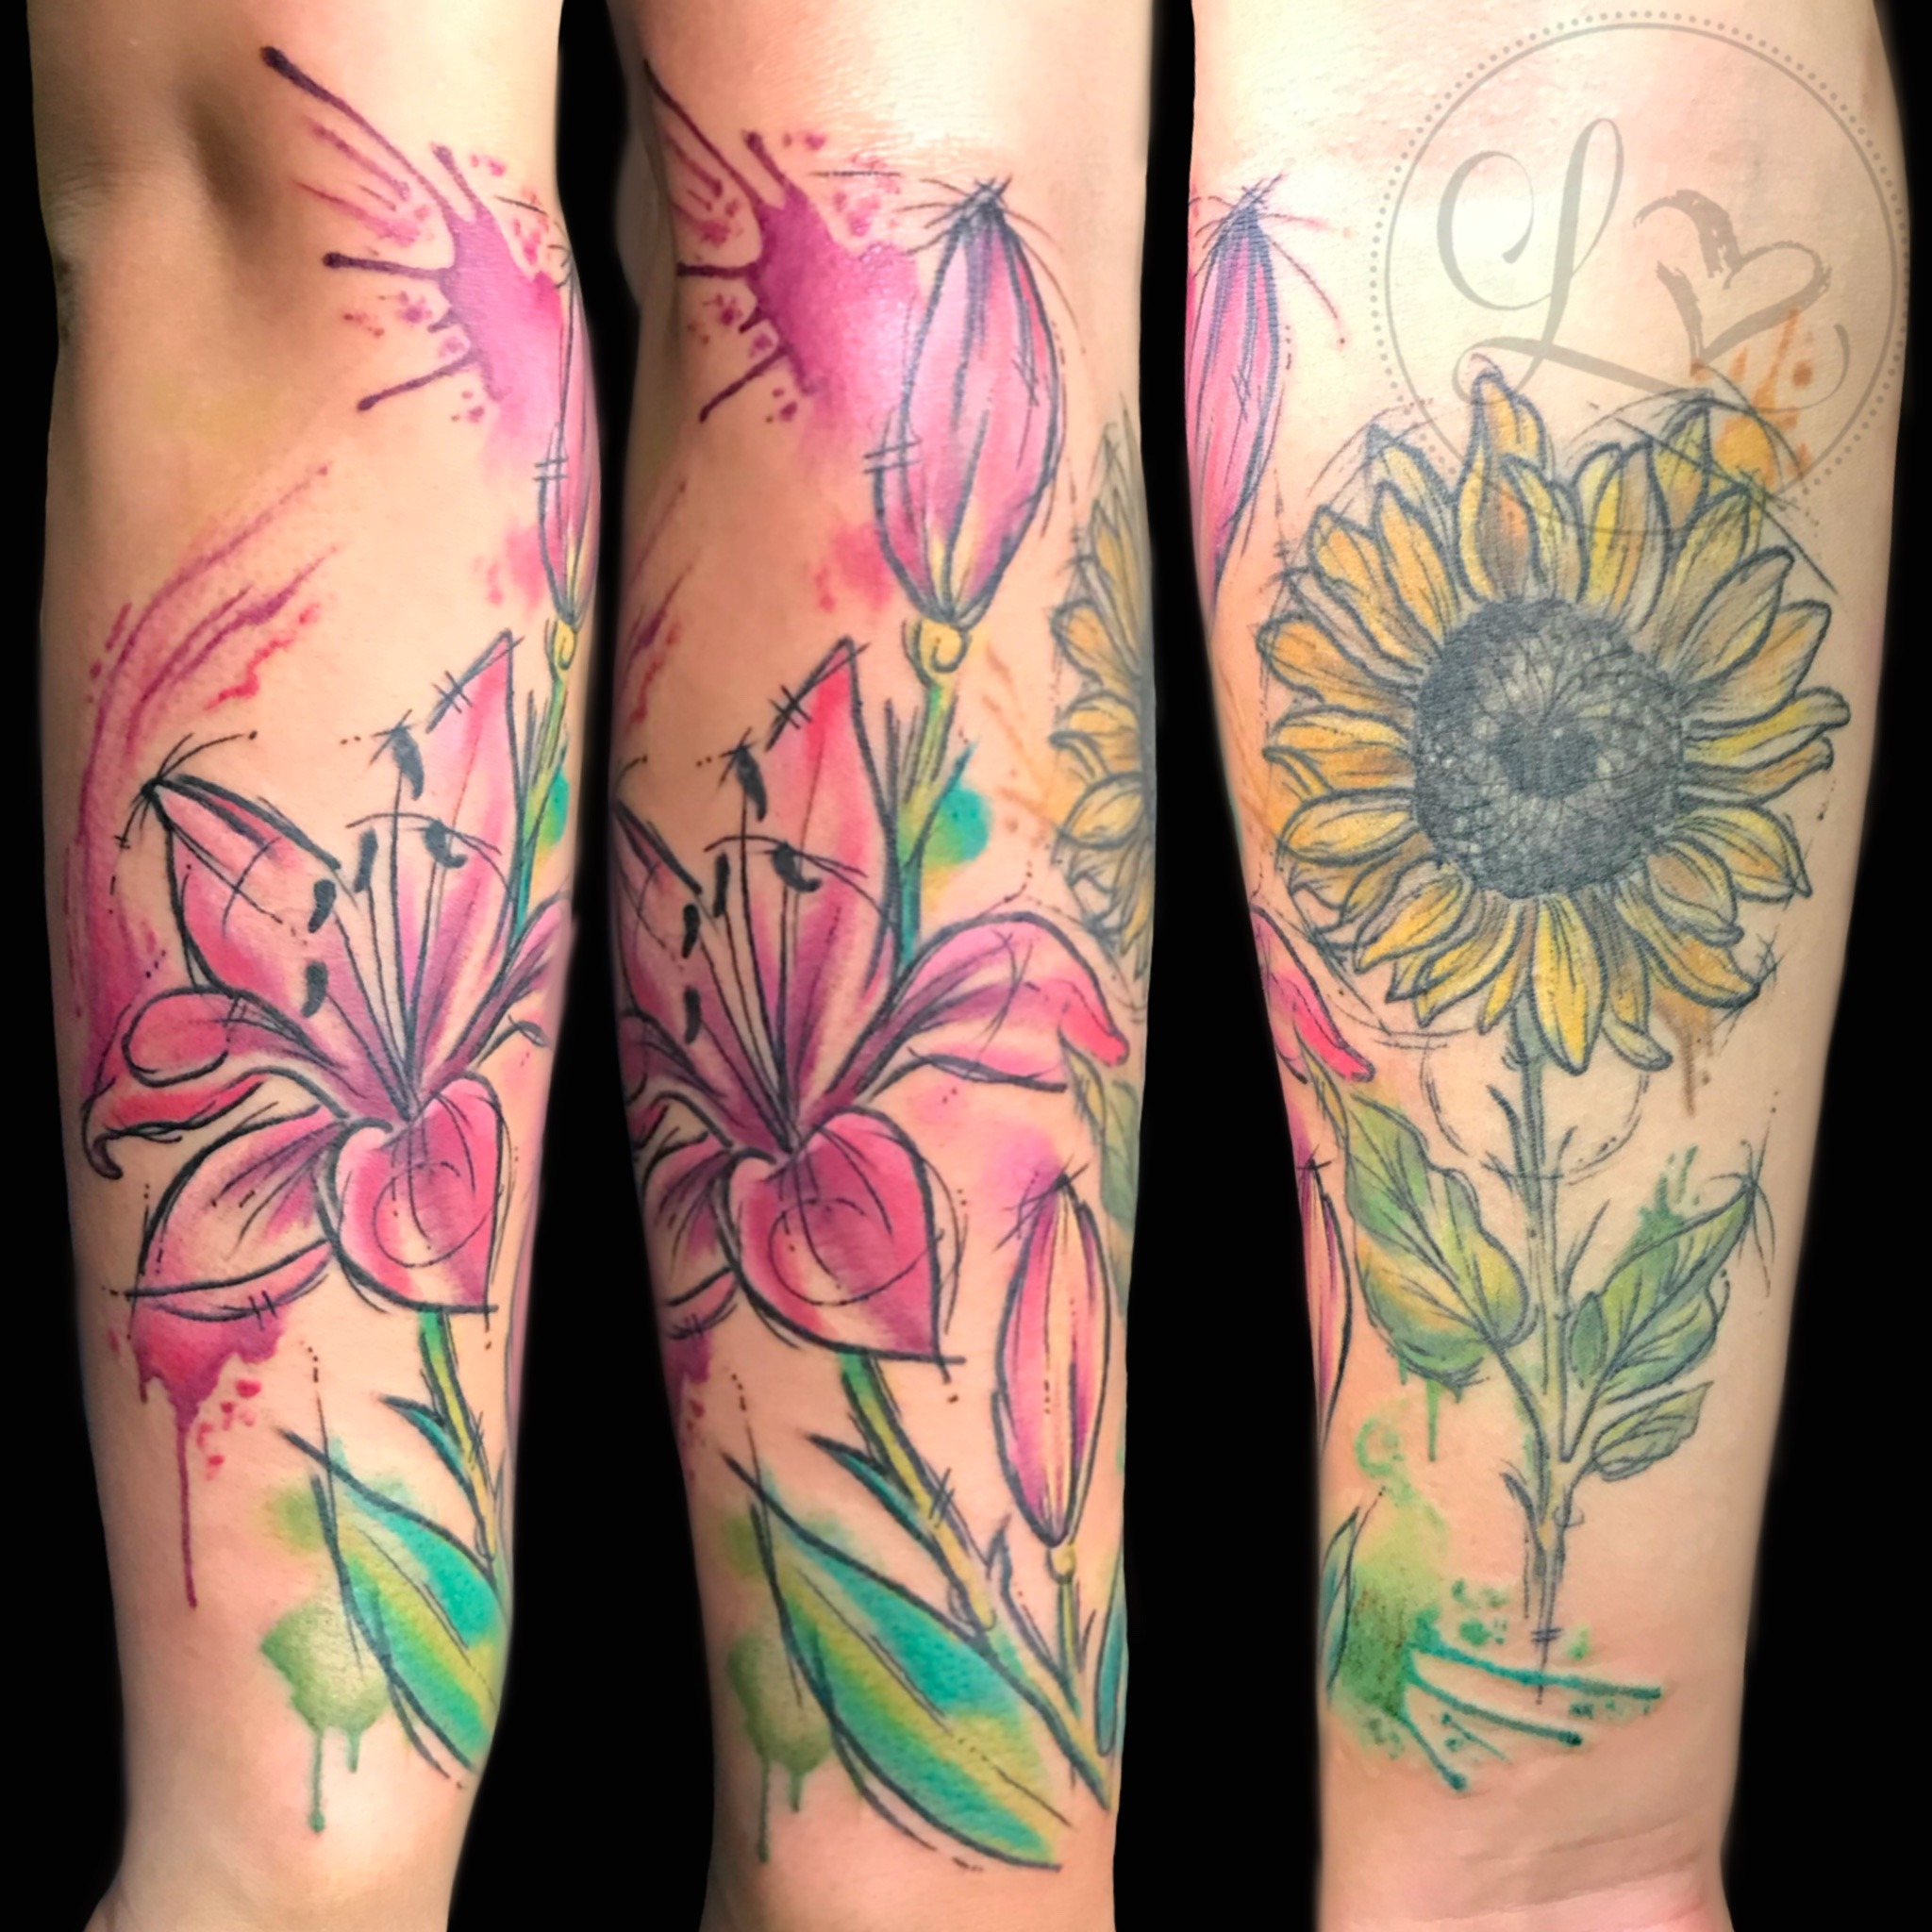 Watercolor half sleeve tattoo of pink stargazer lily and sunflower